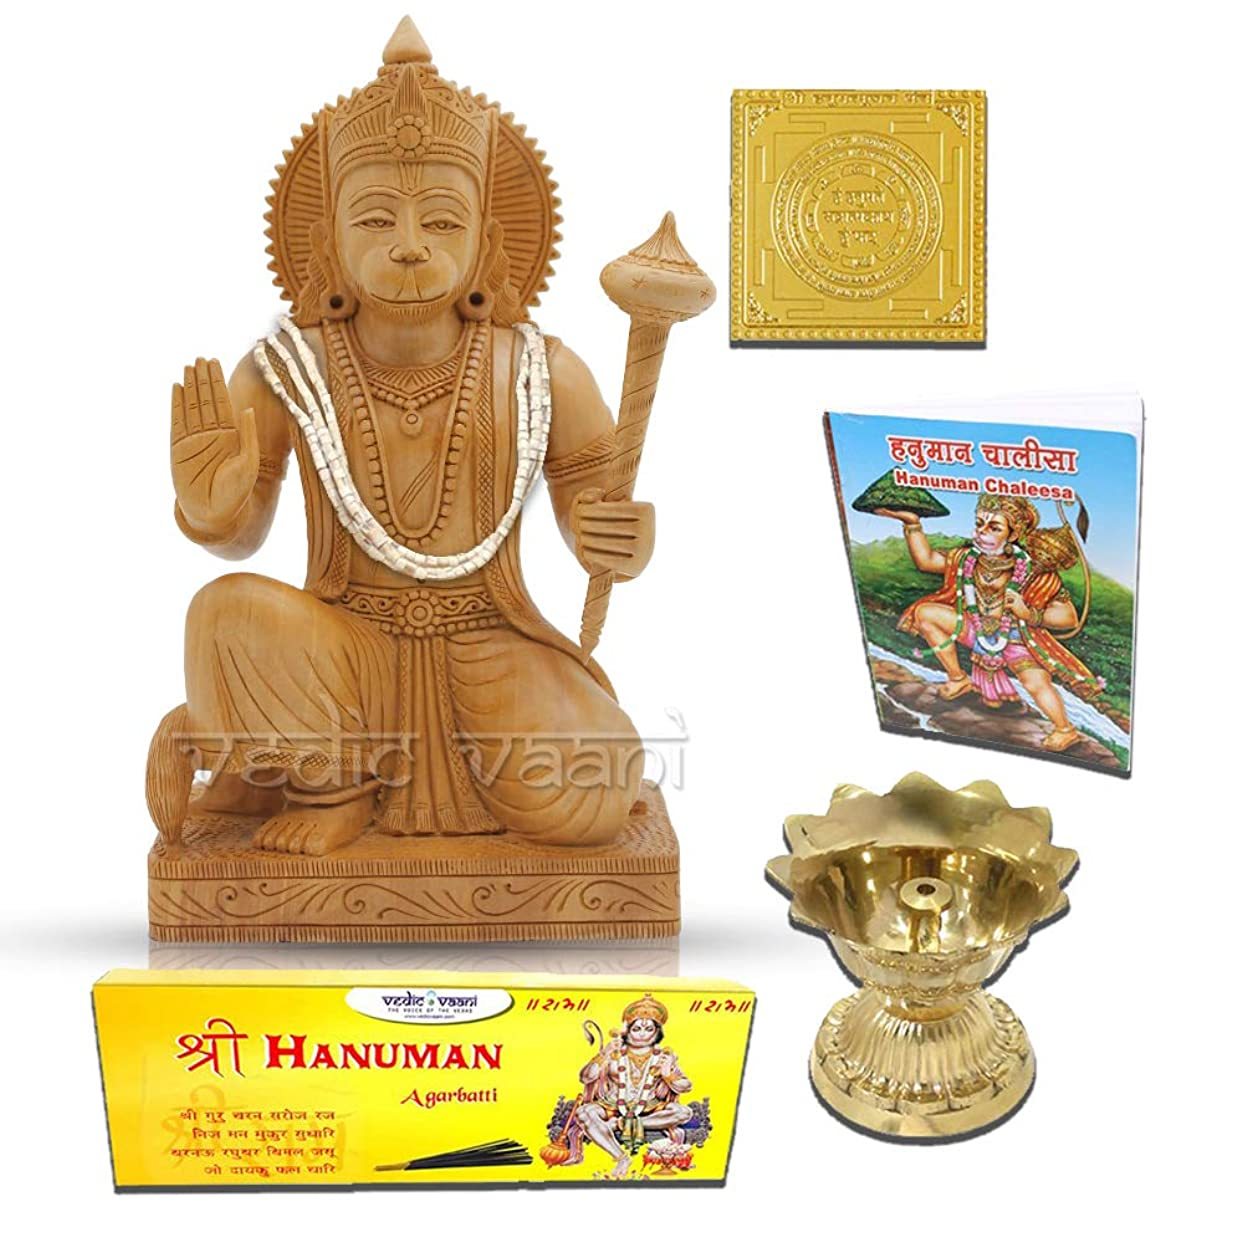 作詞家最大軽Lord Hanuman木製Statue withヤントラ、Chalisa、Diya and Incense Sticks Vedic Vaani